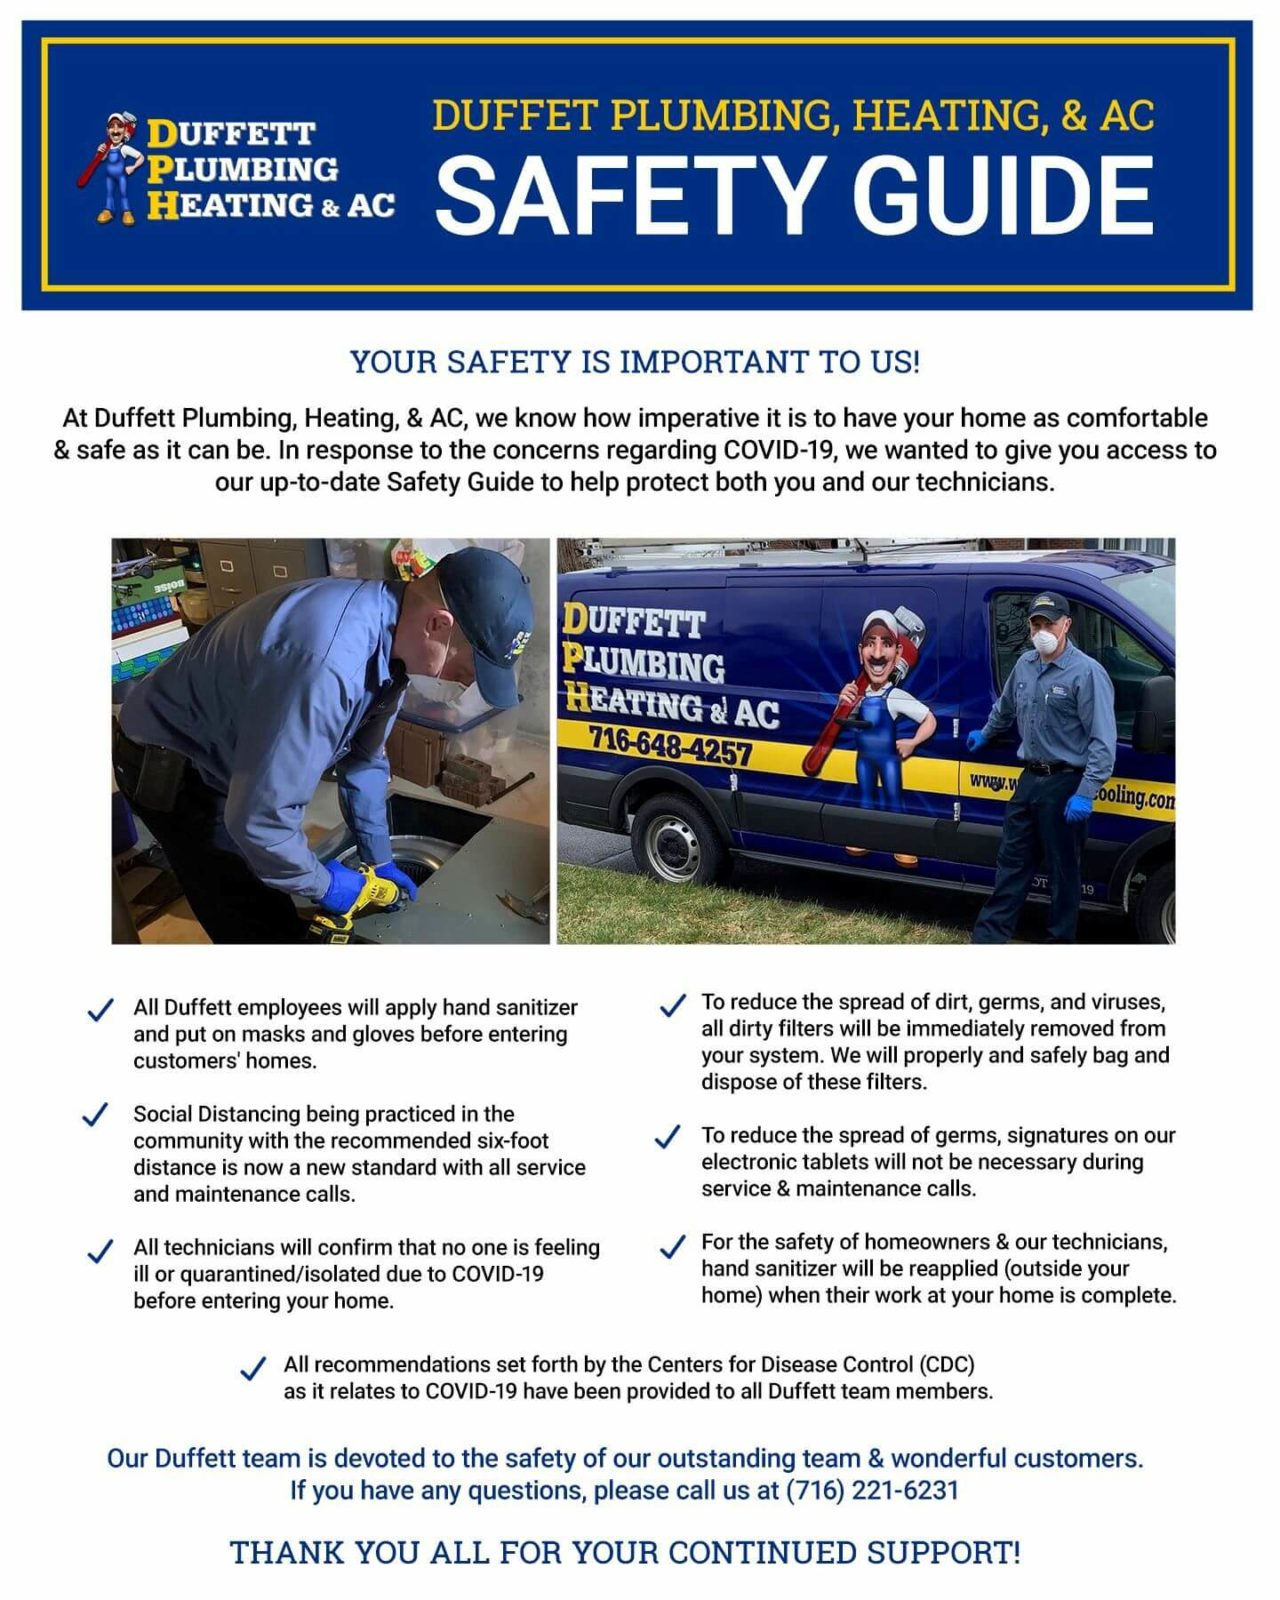 Here is our safety guide, outlining all the measures we're taking to keep you and your family safe during the COVID-19 outbreak.